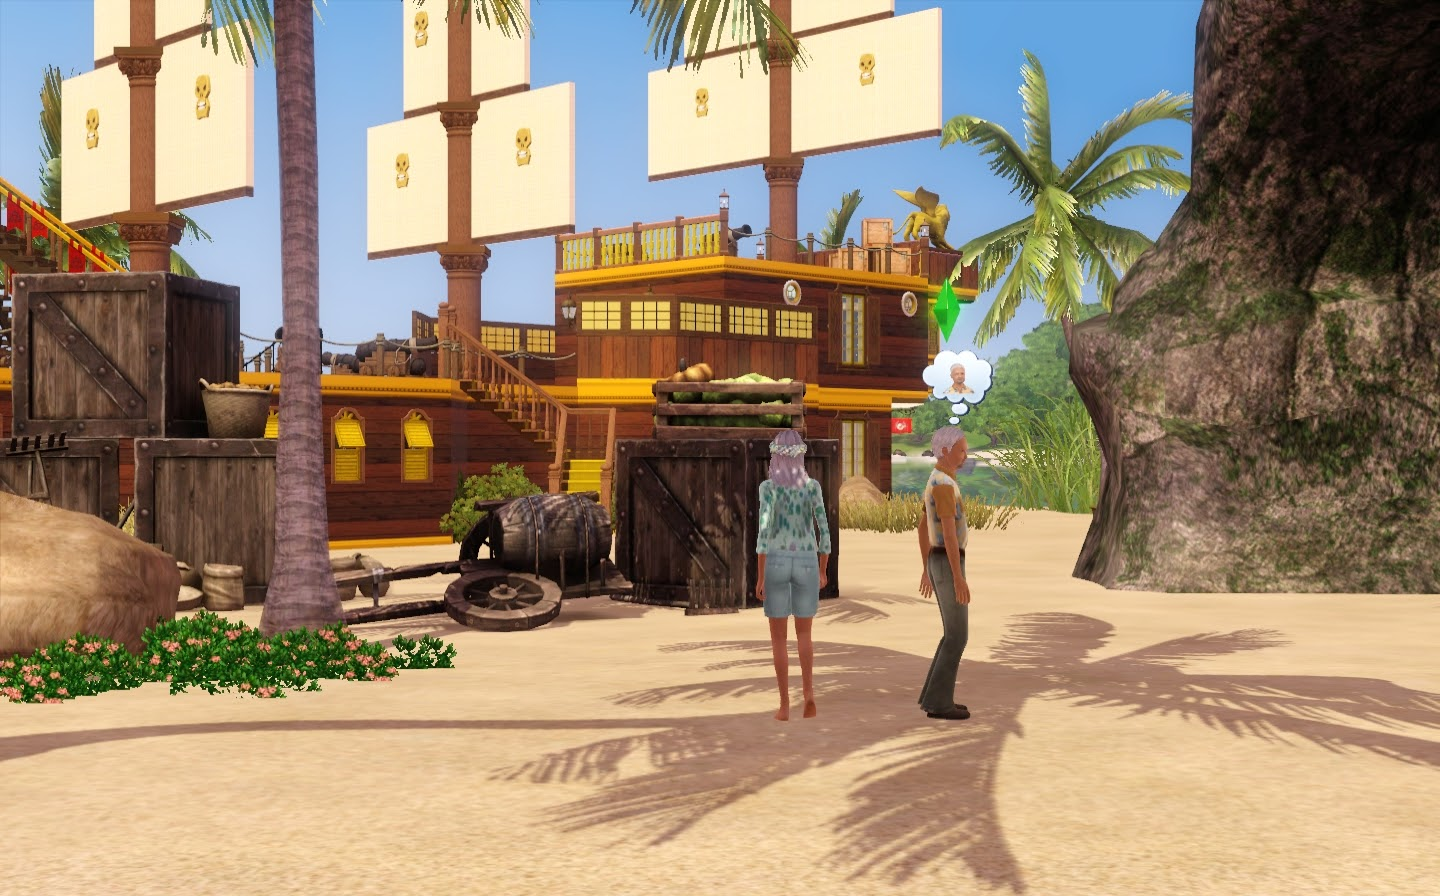 PirateResort%2B%252810%2529.jpg